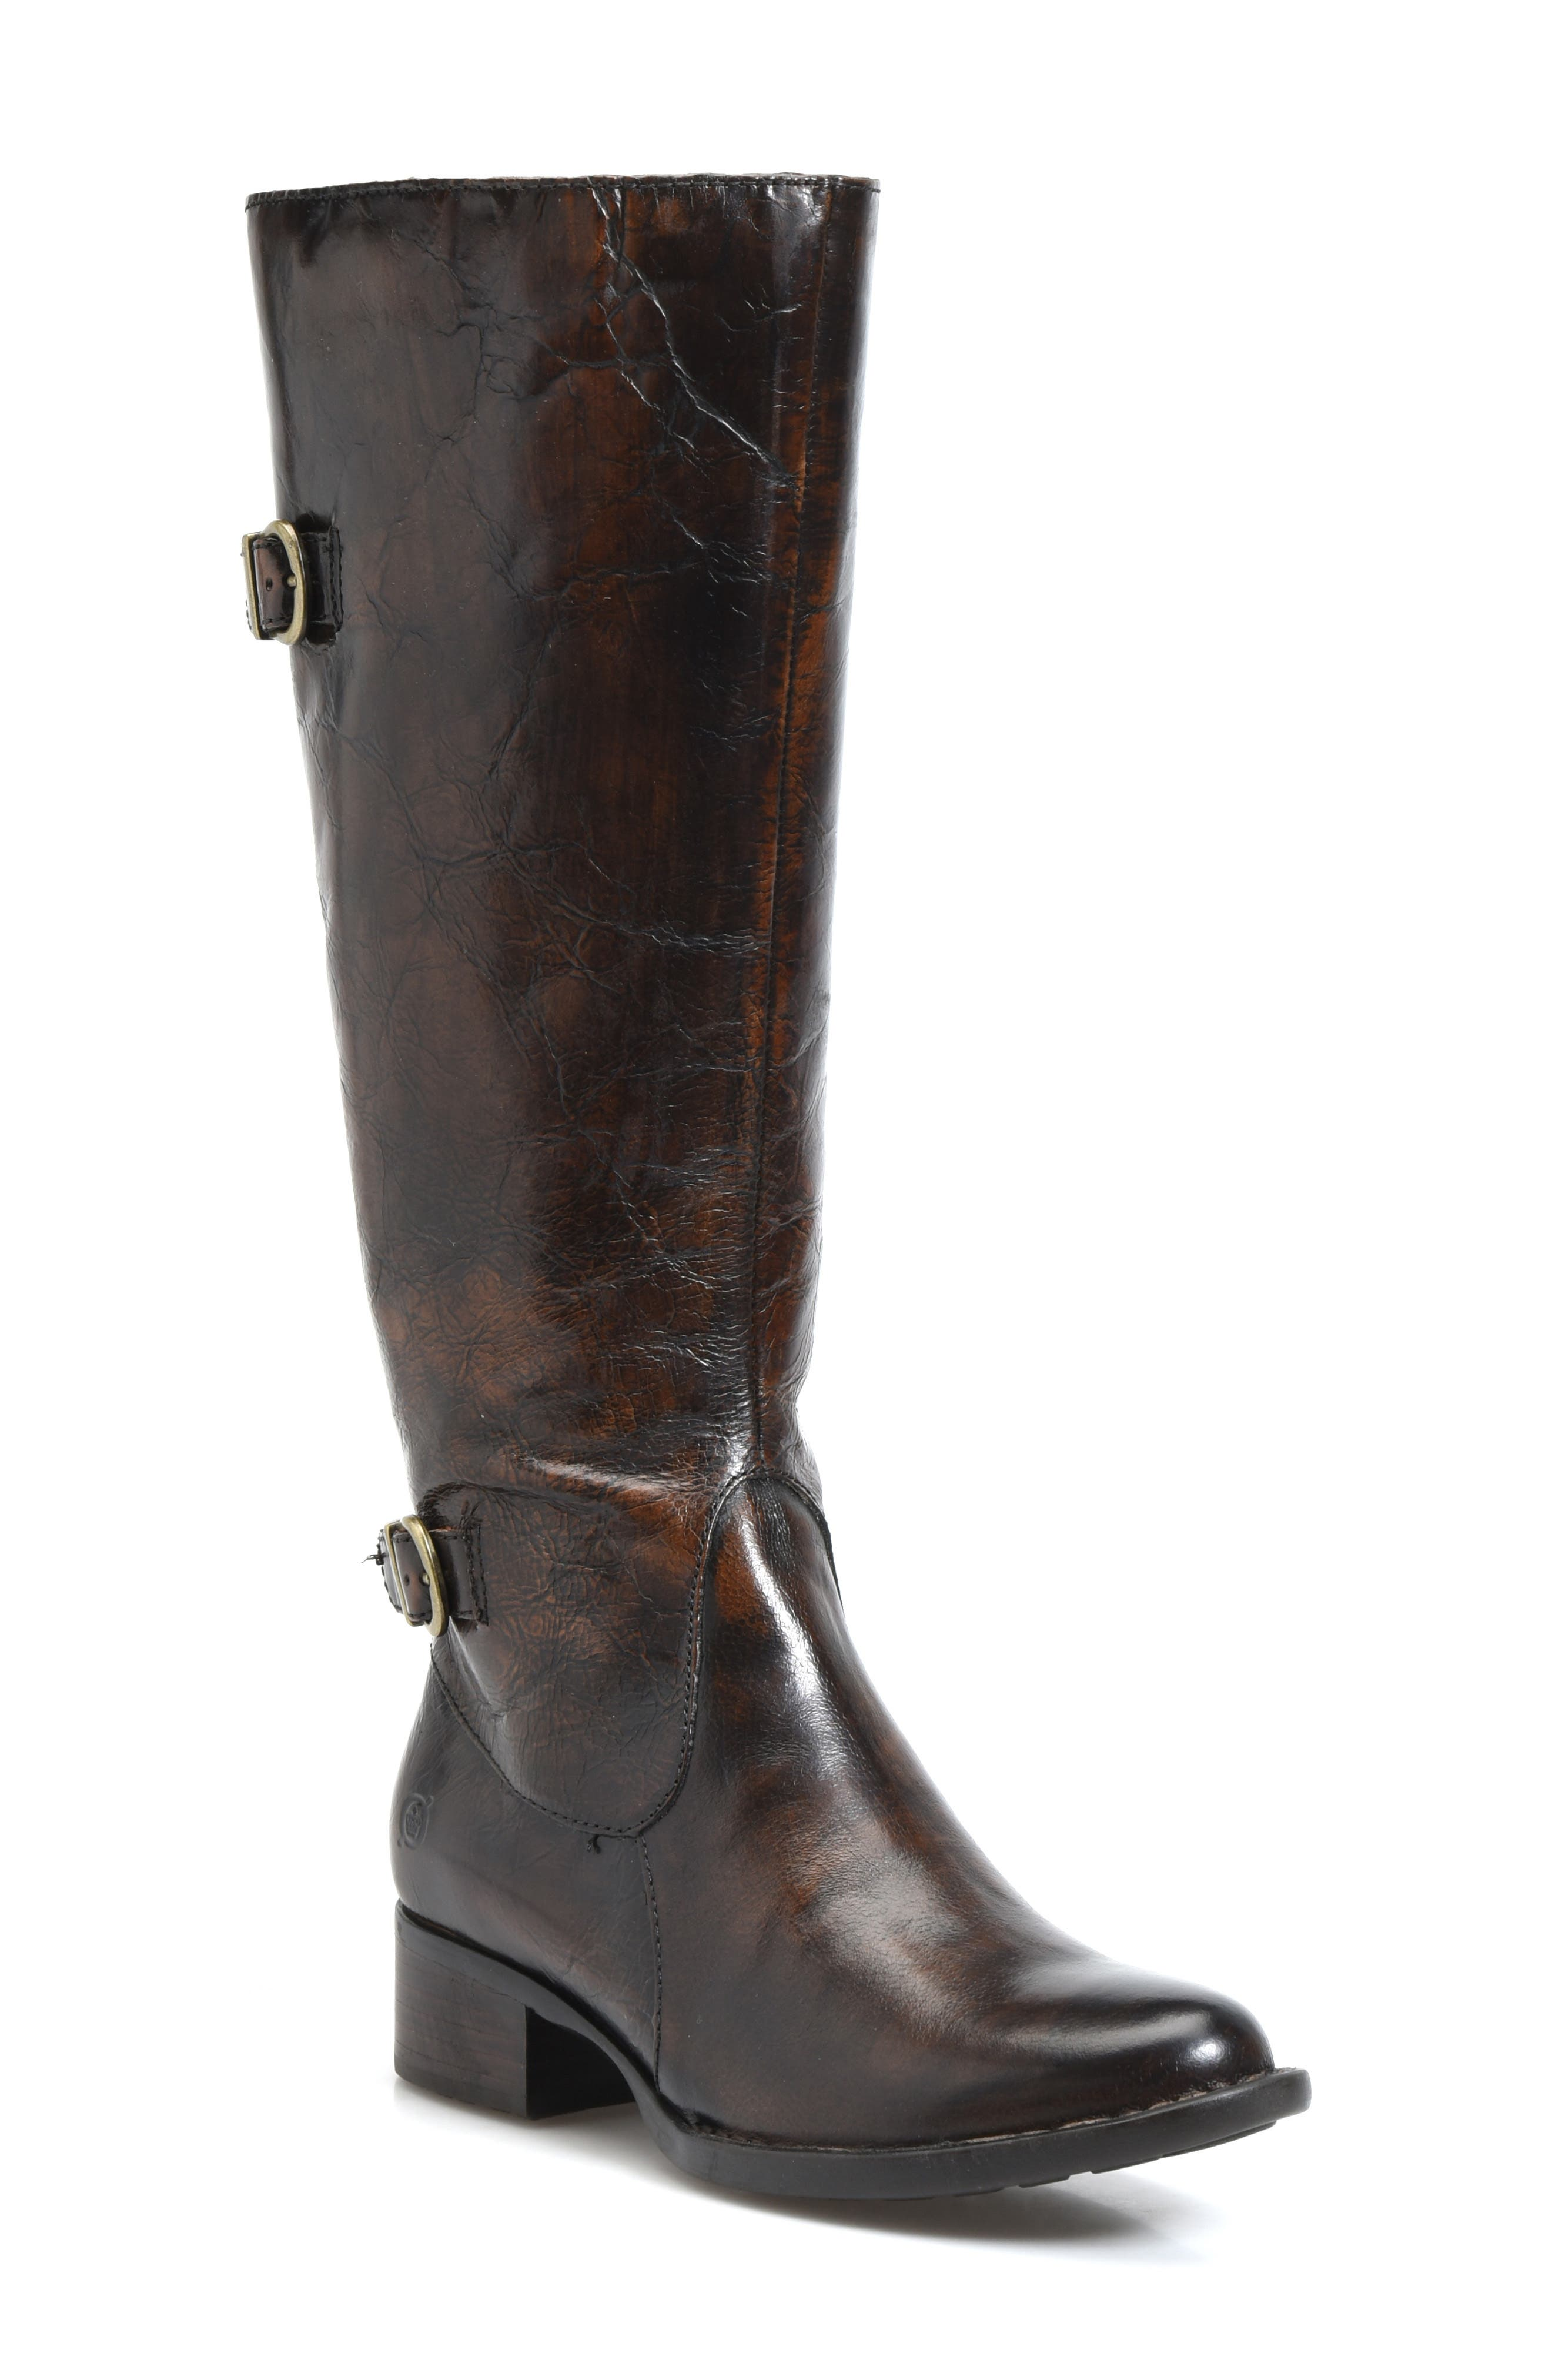 B?rn Gibb Knee High Riding Boot, Brown